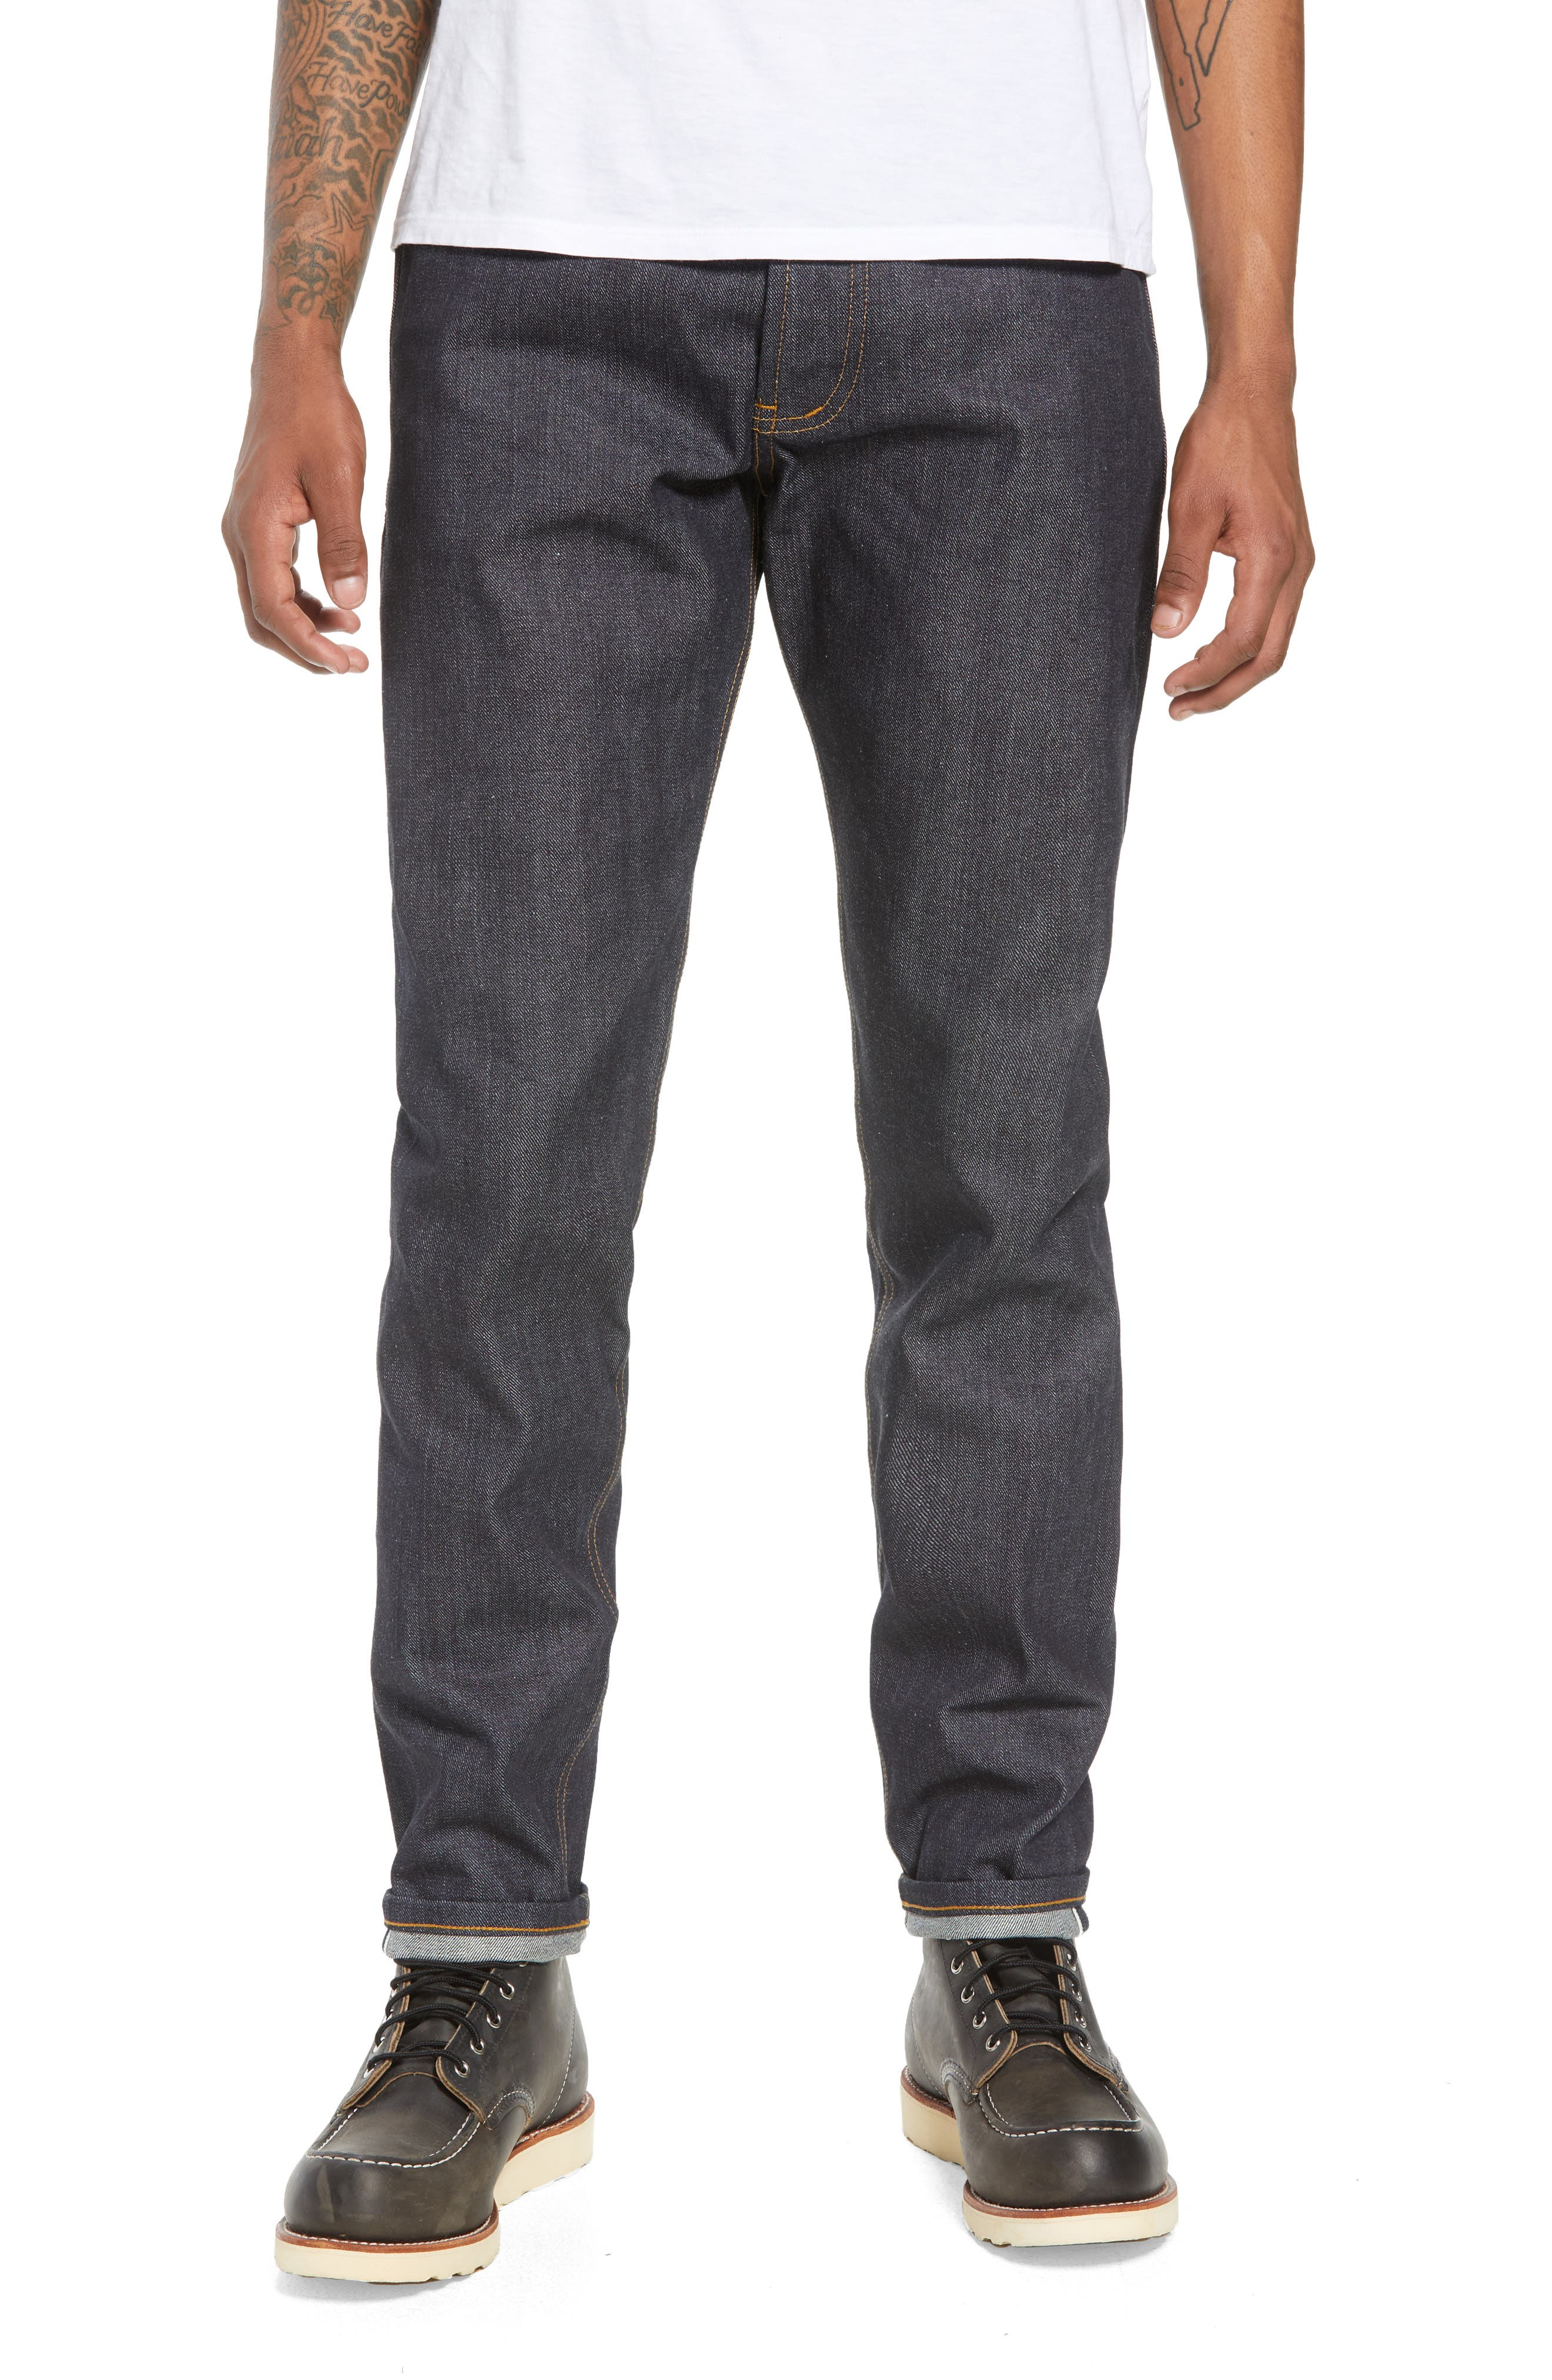 Easy Guy Skinny Fit Jeans,                         Main,                         color, Left Hand Twill Selvedge